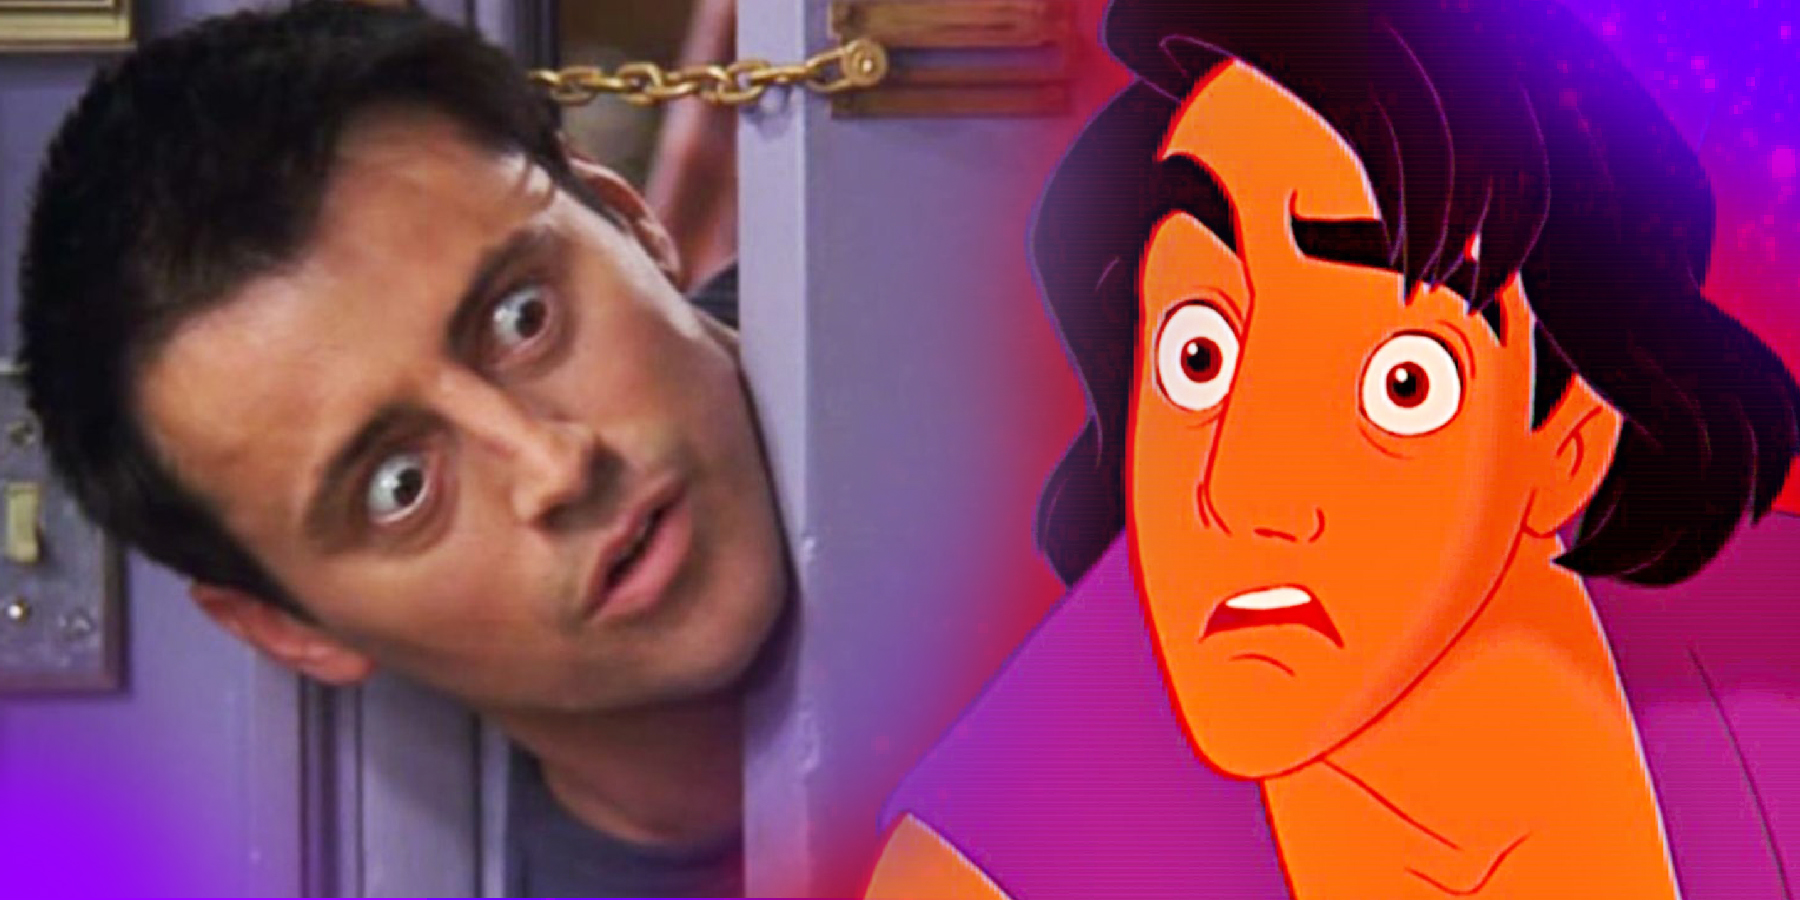 QuizPick-Your-Fav-Disney-Characters-and-Find-Out-What-Friends-Character-You-Are